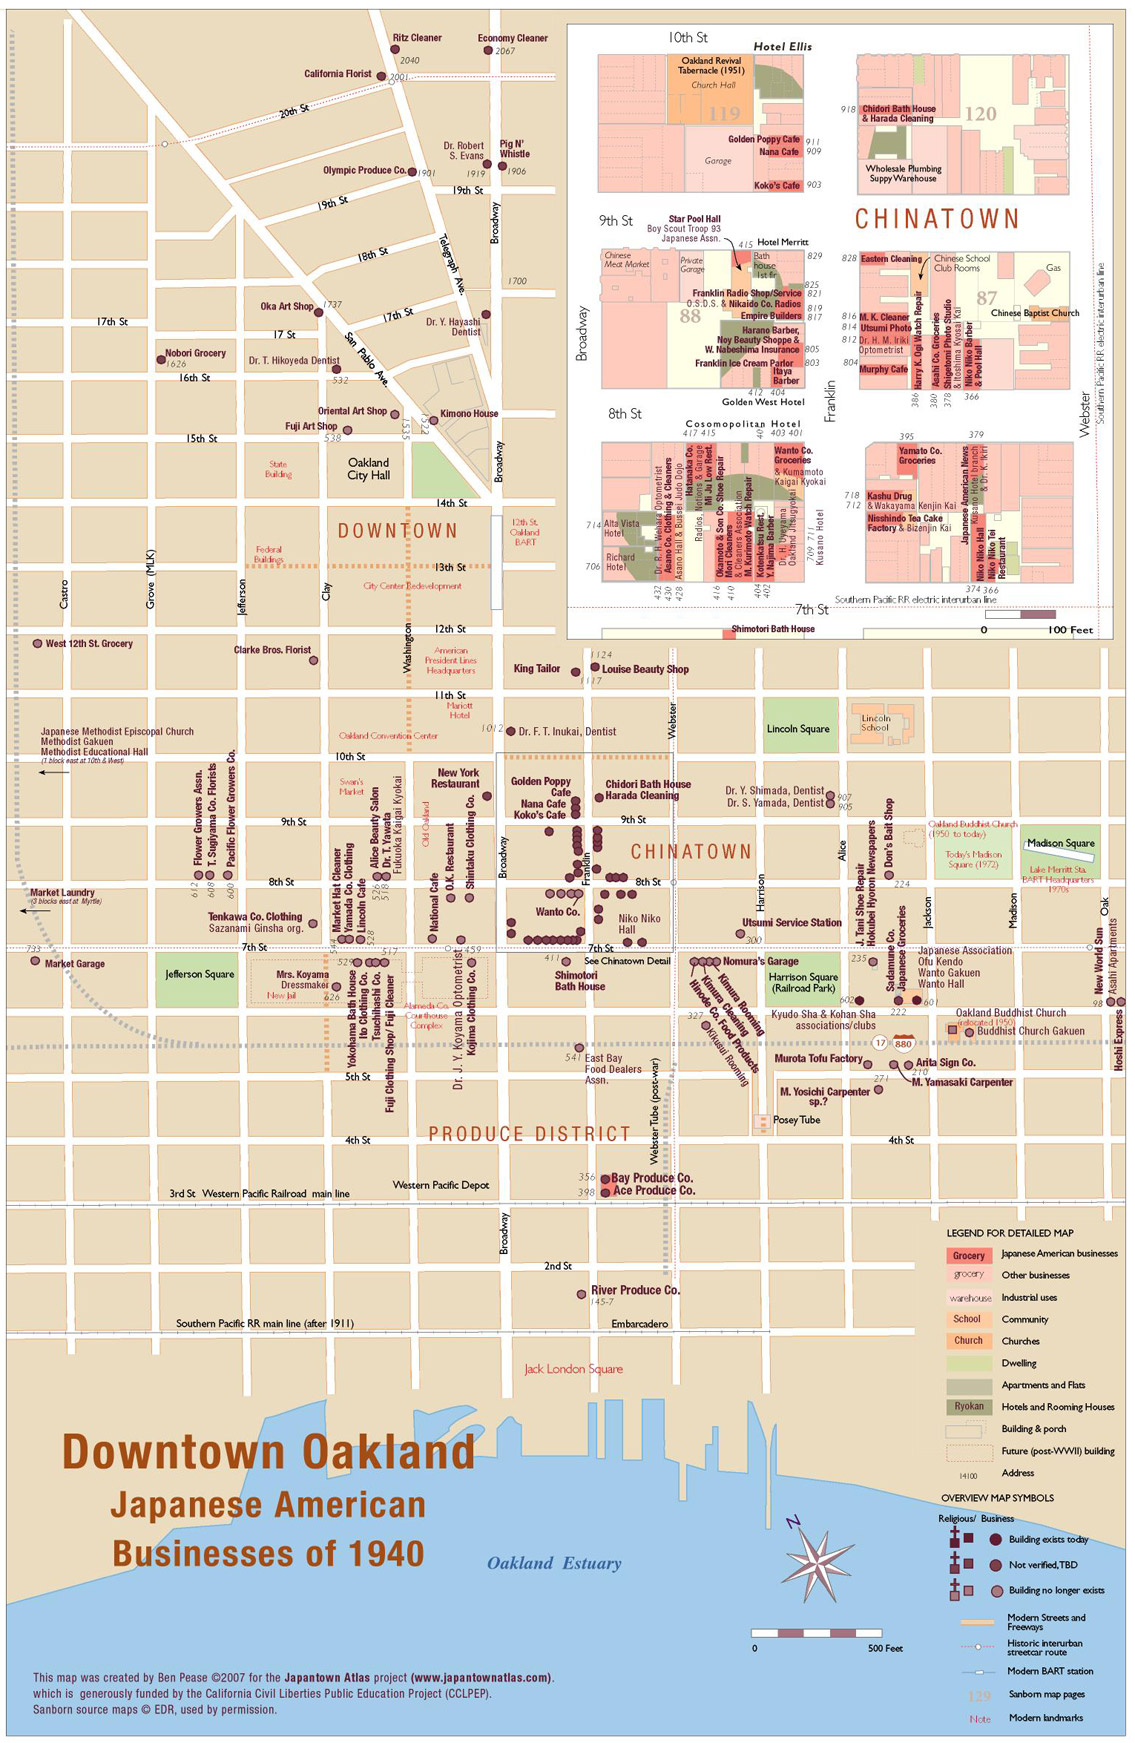 Oakland Downtown & Chinatown Map on weeksville map, five points map, terminal e map, new york city map, broadway play map, museum park map, horner park map, ny public library map, clason point map, central park map, downtown nyc map, park west map, lower manhattan map, the gallery at market east map, forbidden island map, east loop map, gold mountain map, the west village map, assembly square map, greenwich village map,